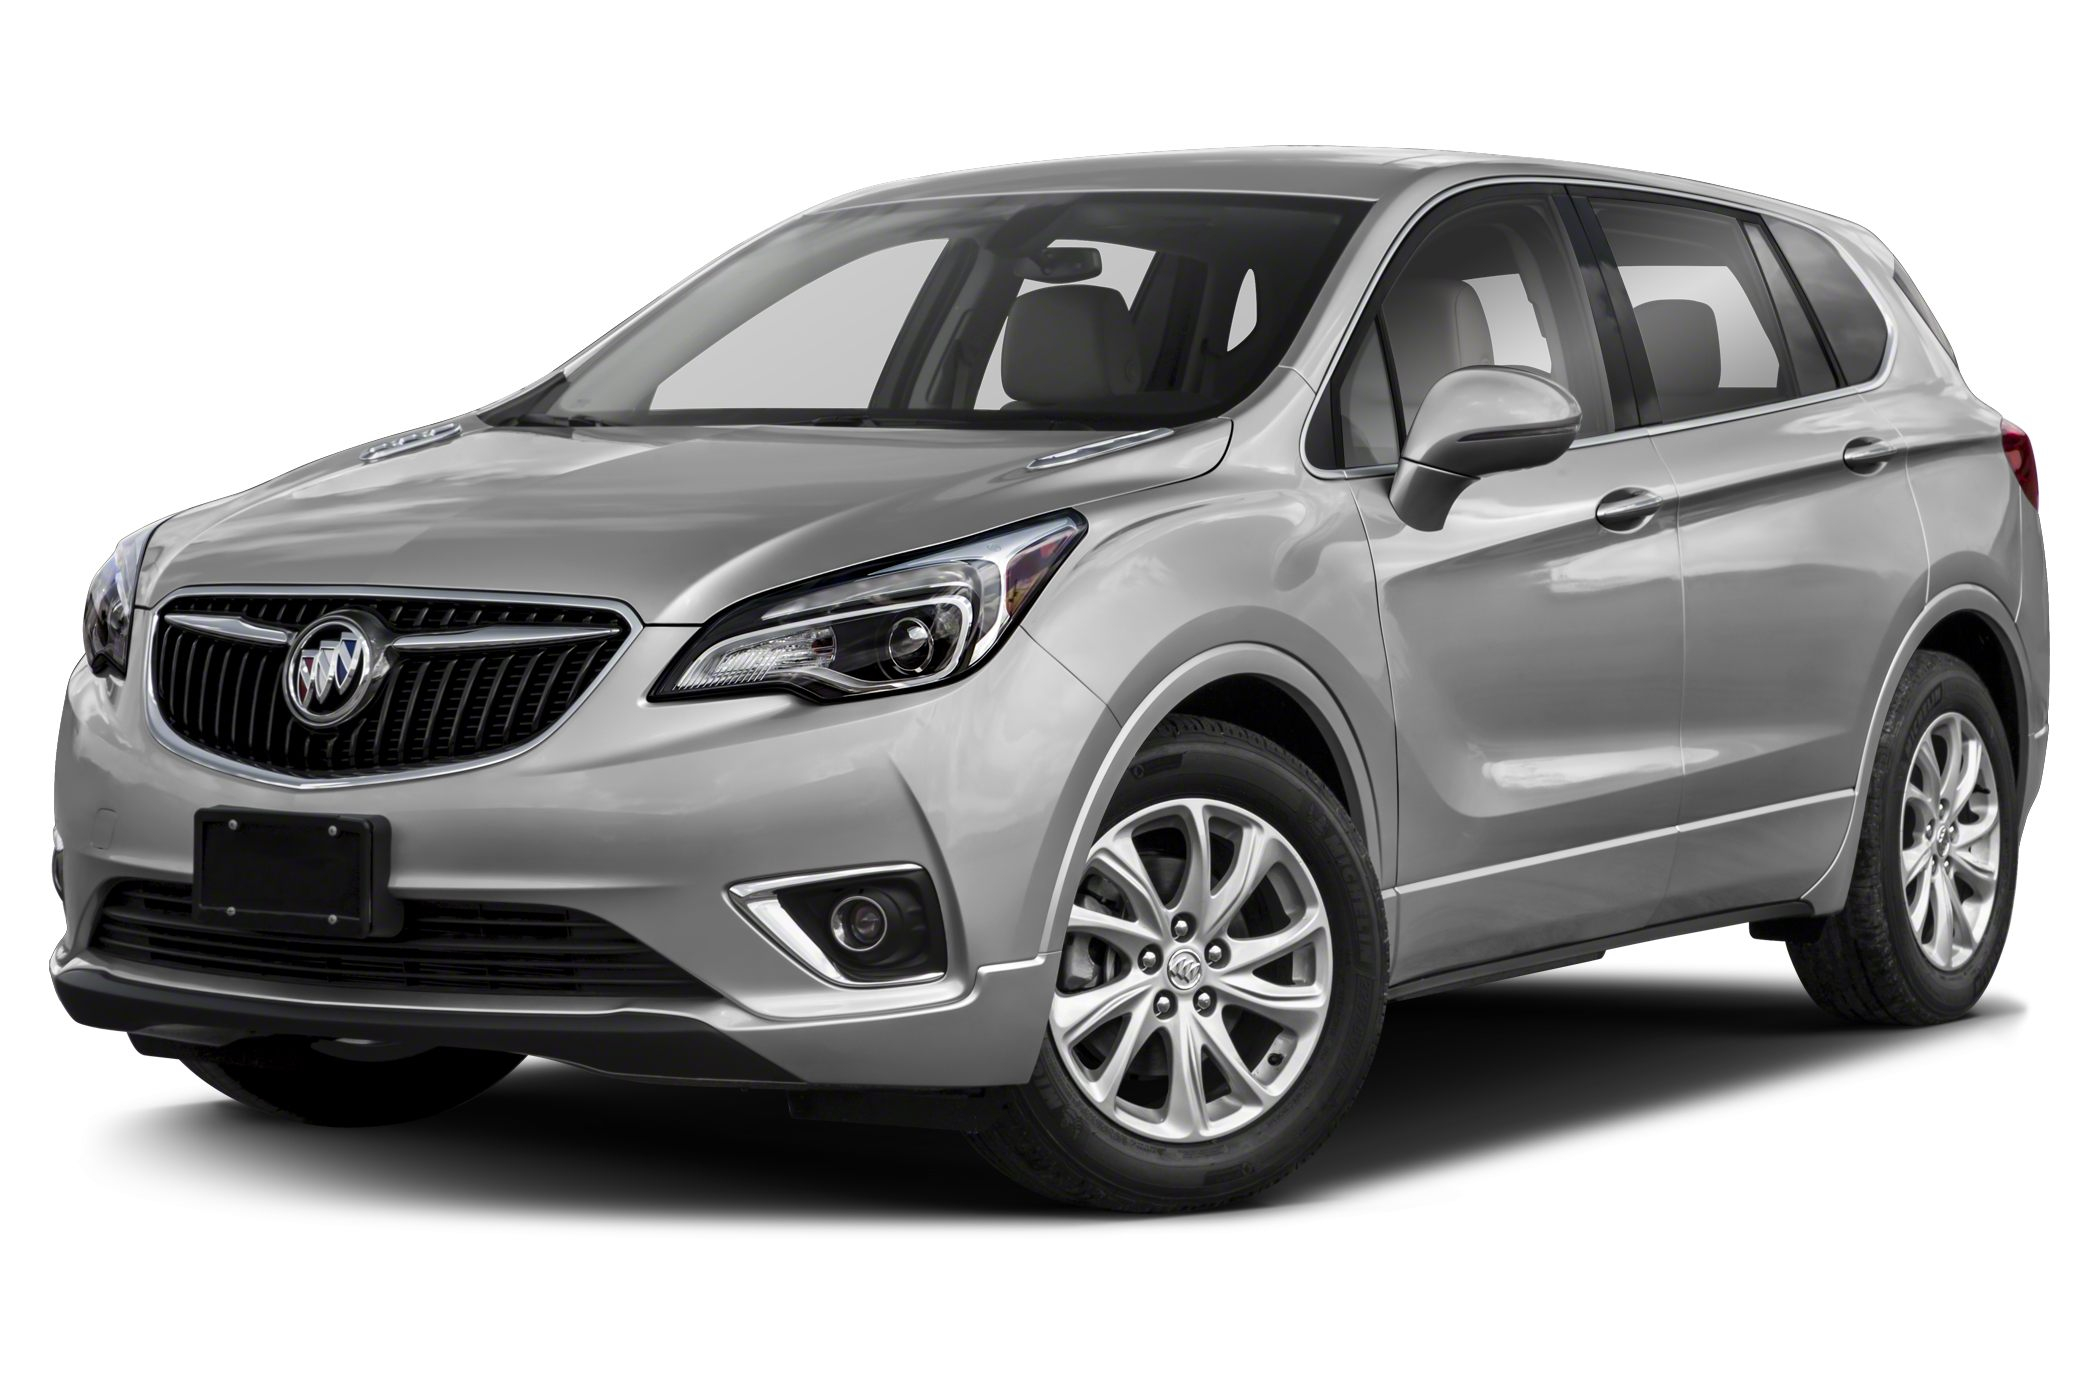 Buick Envision Interior Just As Nice As Its Exterior | Autoblog New 2021 Buick Envision Hp, Incentives, Infotainment Manual